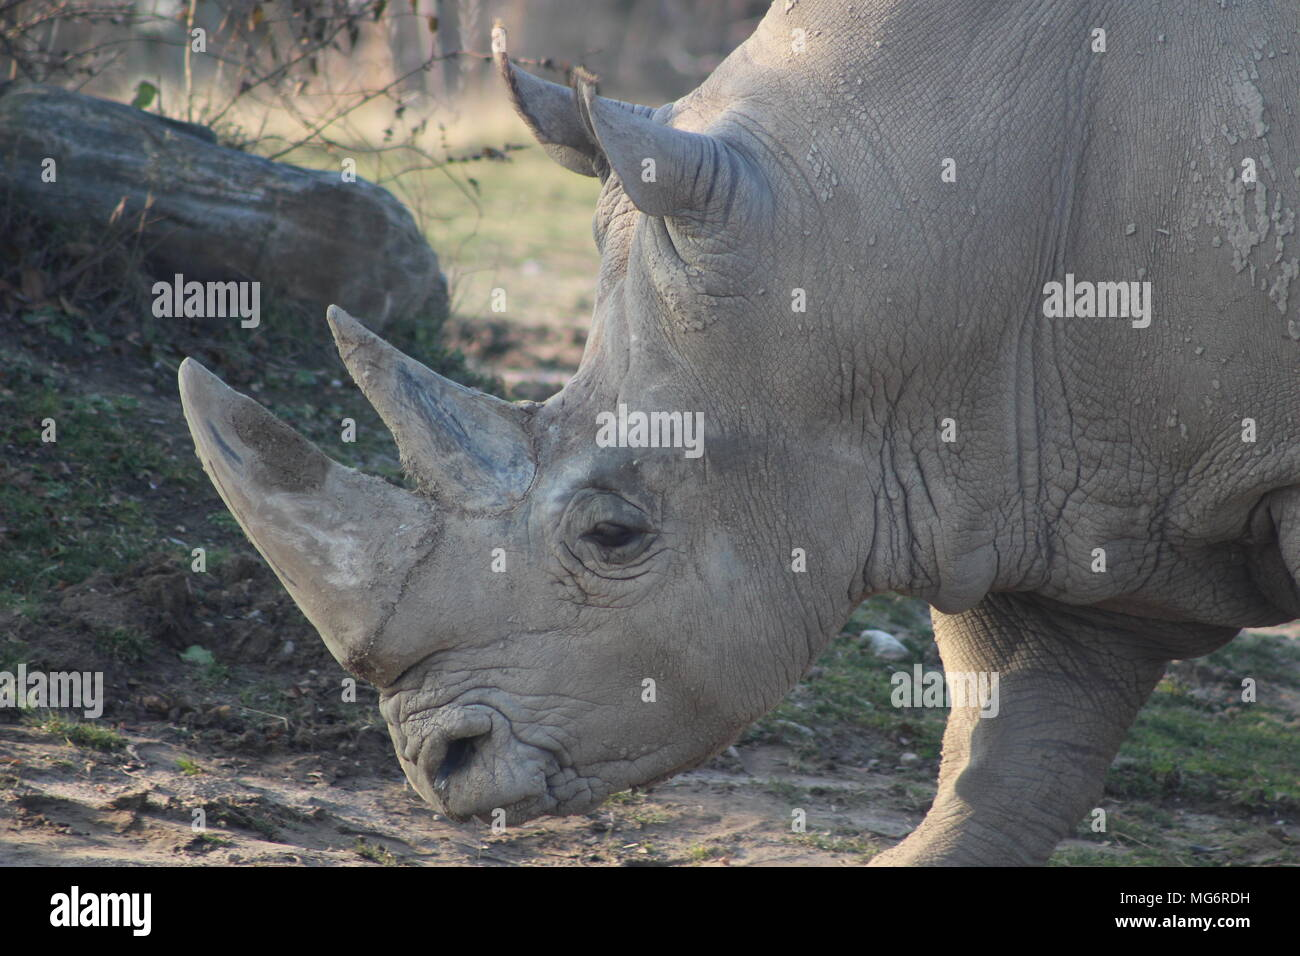 Close up portrait of a white rhino which is an endangered animal the requires conservation - Stock Image